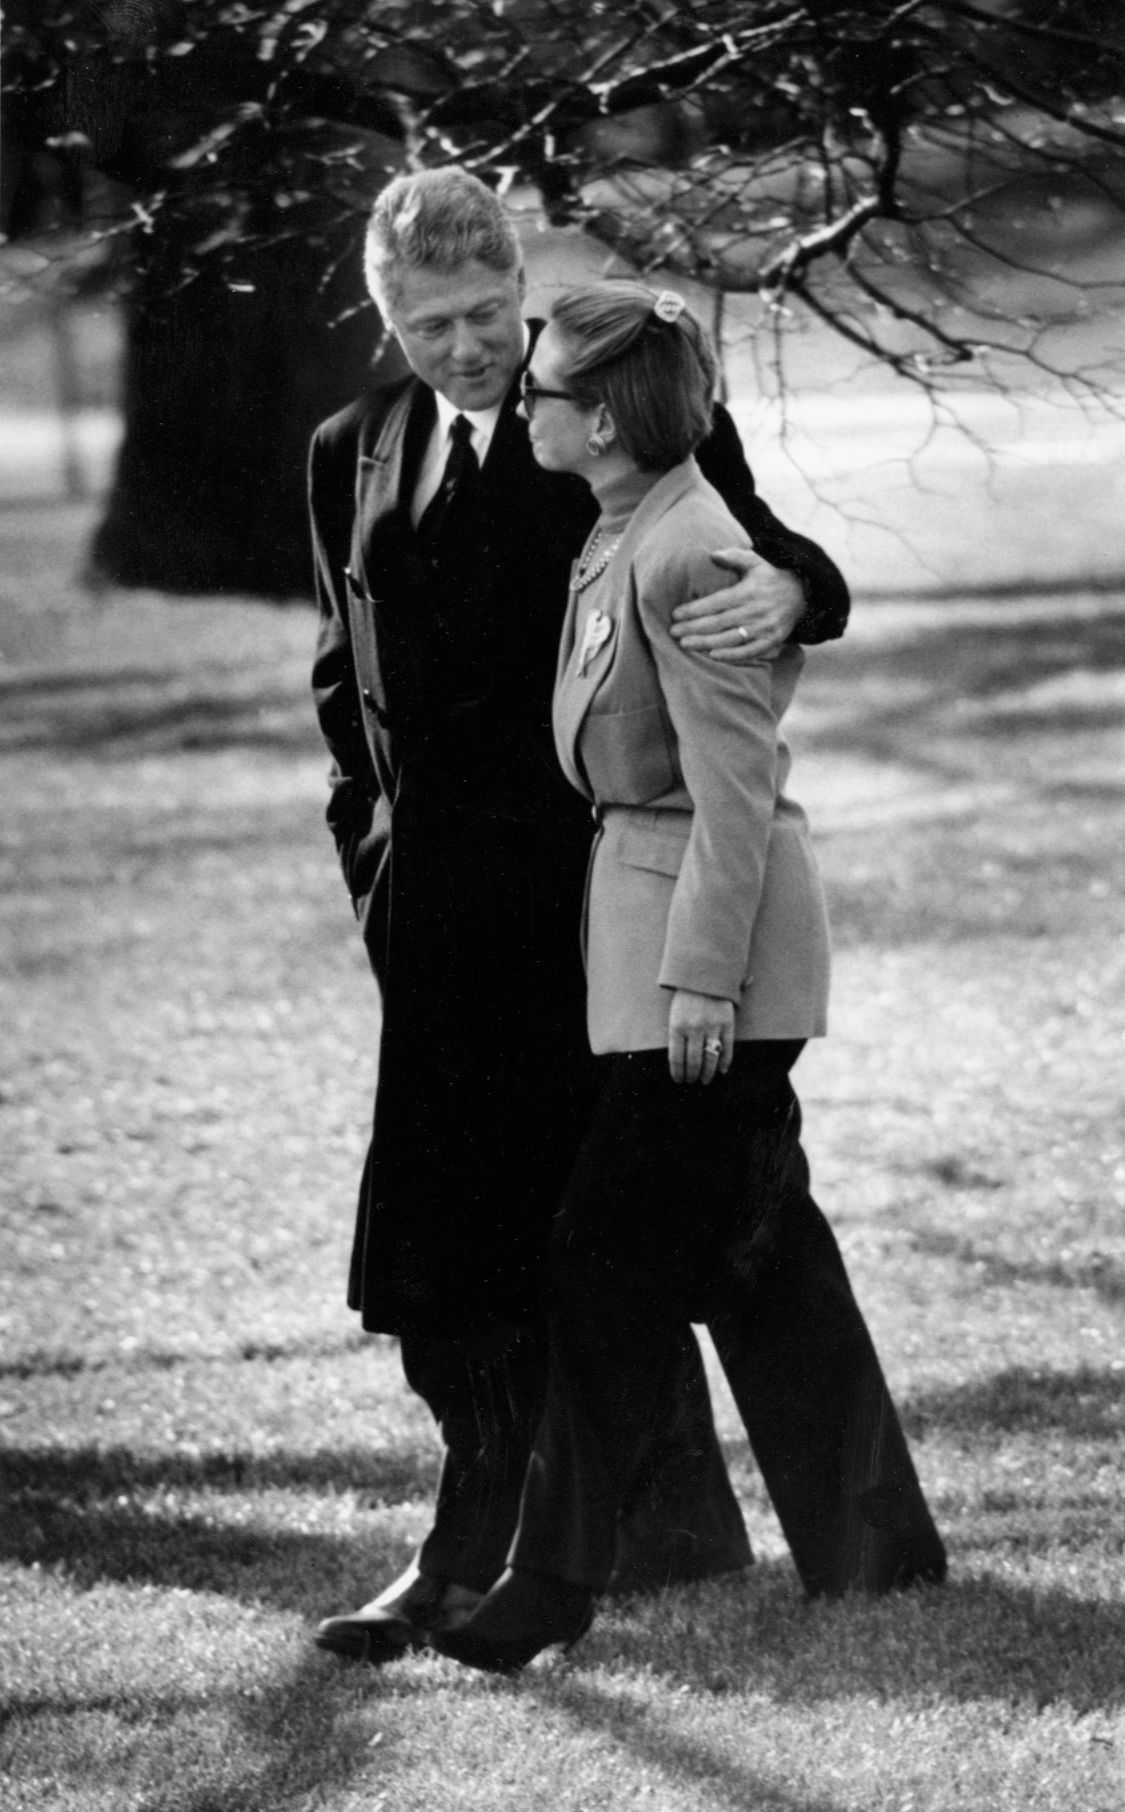 FILE WASHINGTON, DC - JAN 6, 1994:President Bill Clinton is escorted by Hillary to a waiting helicopter. The president was leaving for Arkansas after learning of the death of his mother.(Photo by Margaret Thomas/The Washington Post via Getty Images) via @AOL_Lifestyle Read more: http://www.aol.com/article/2016/10/04/reporter-confronts-bill-clinton-over-hillarys-alleged-cheating/21507845/?a_dgi=aolshare_pinterest#fullscreen